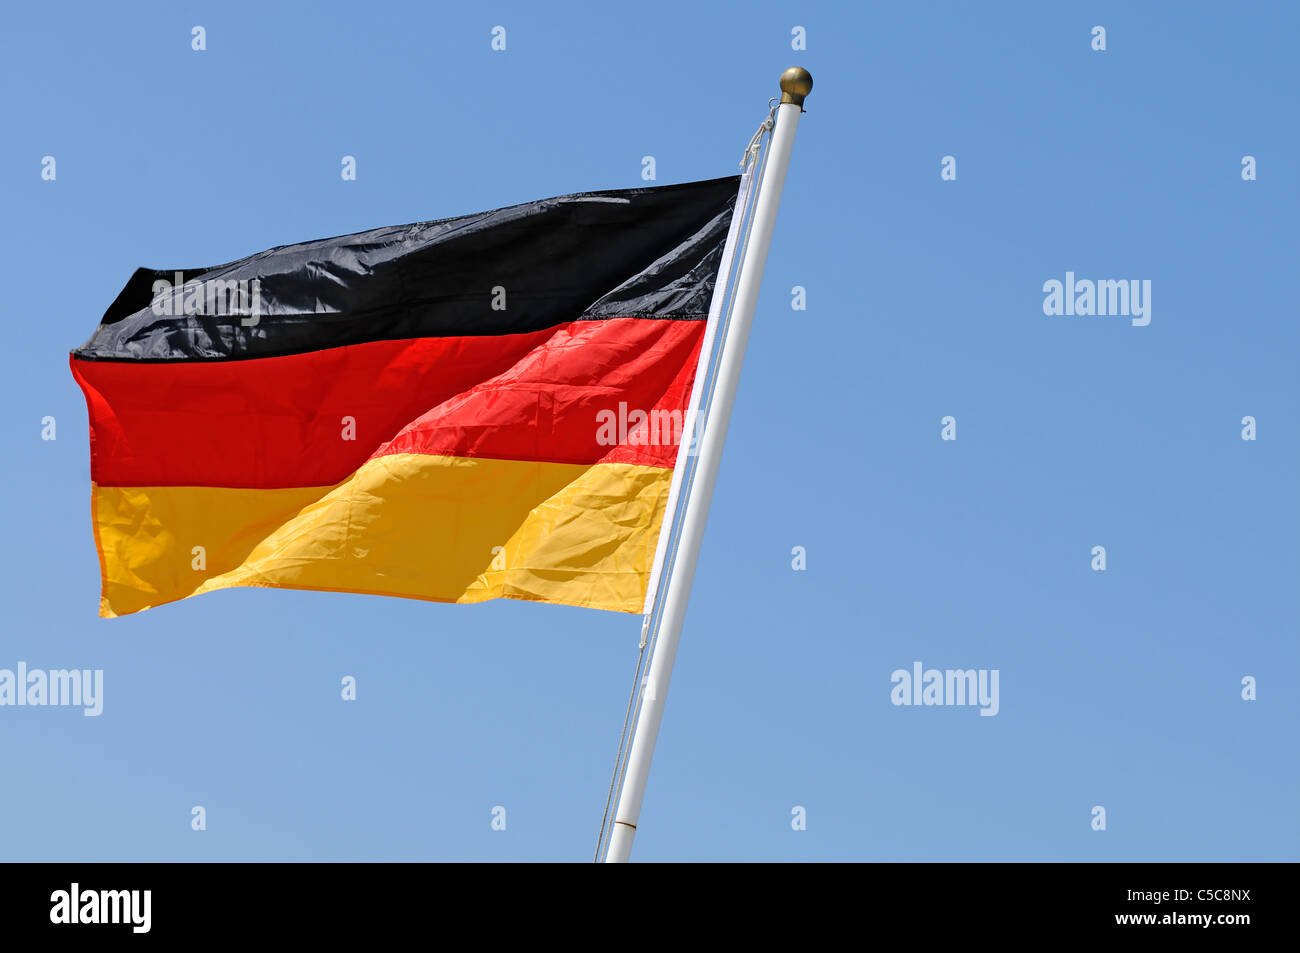 German flag in the wind on blue sky background - Stock Image